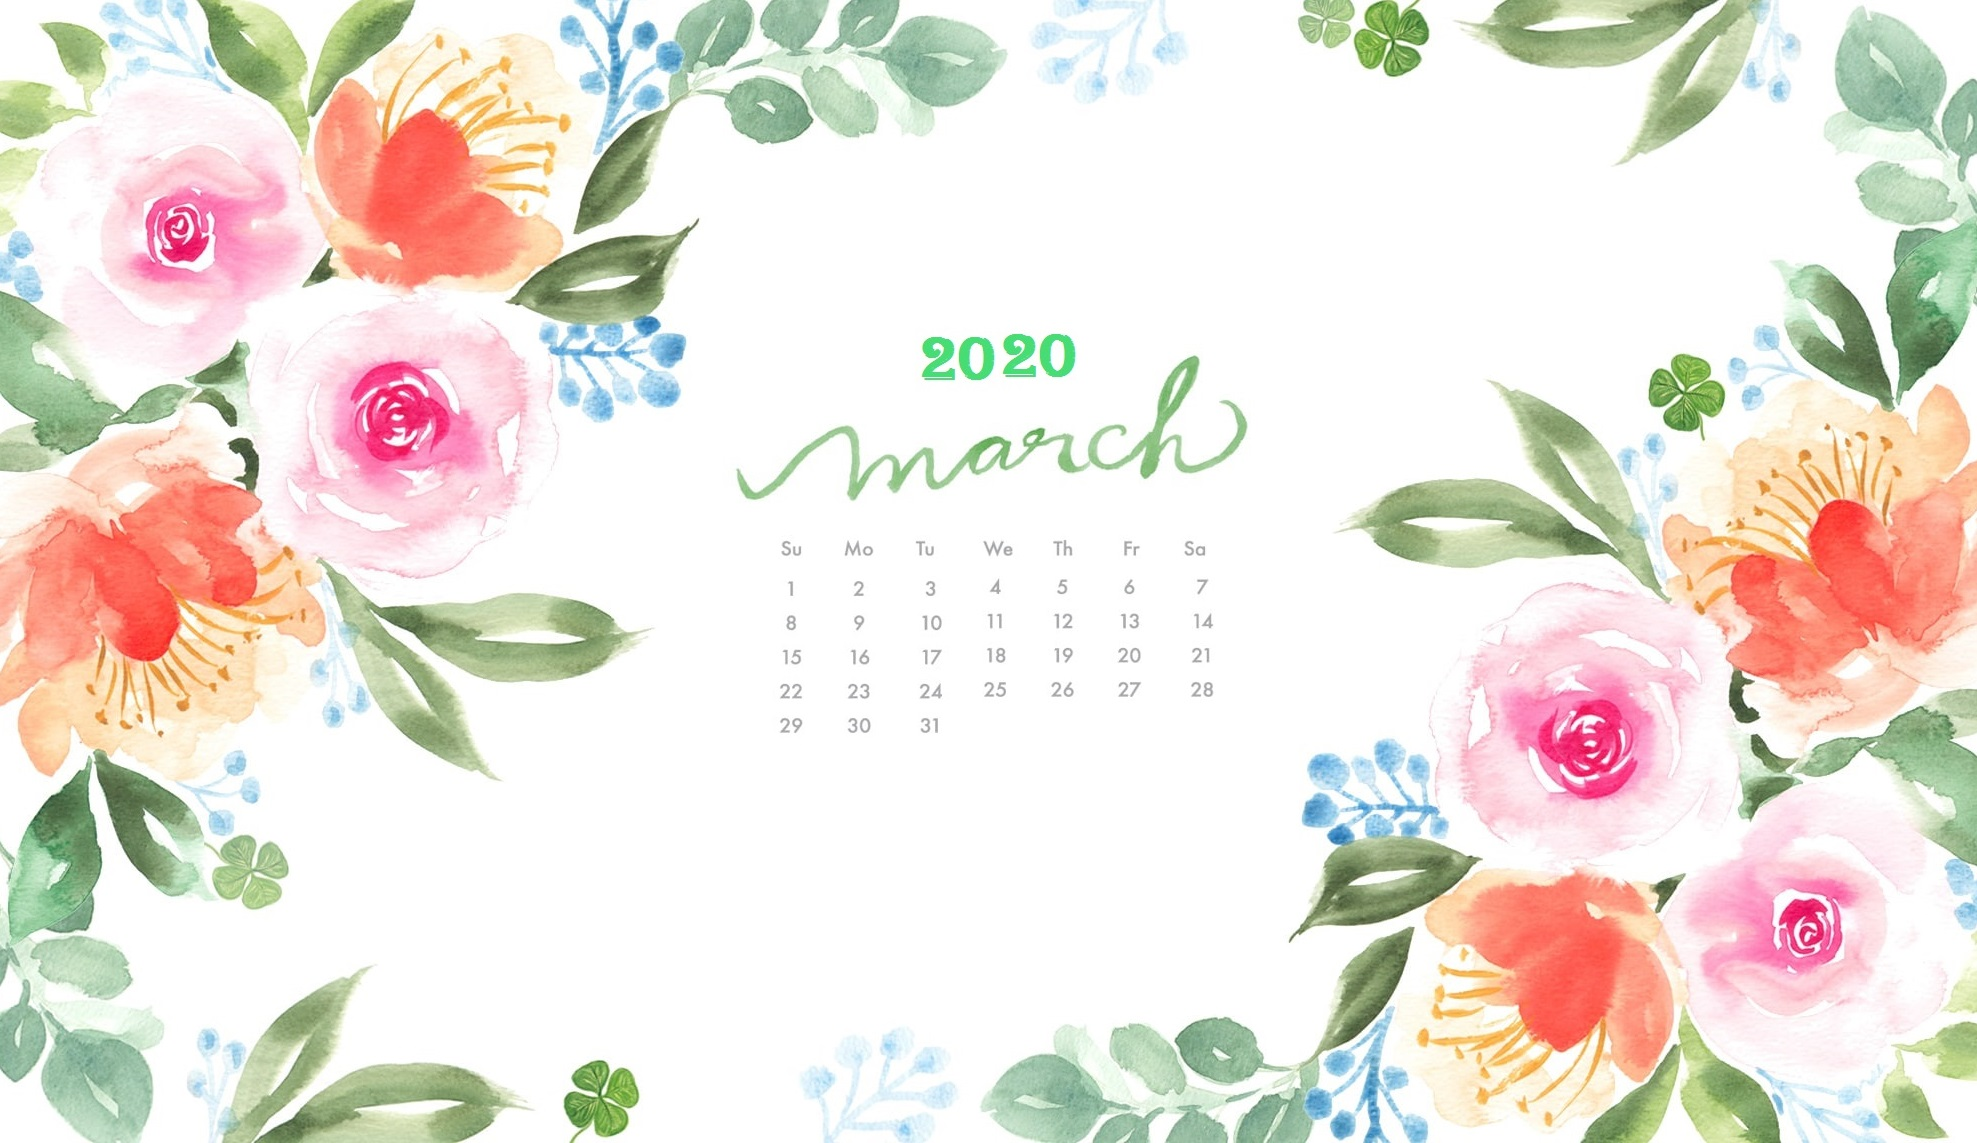 March 2020 Wallpaper Calendar Latest Calendar 1977x1143